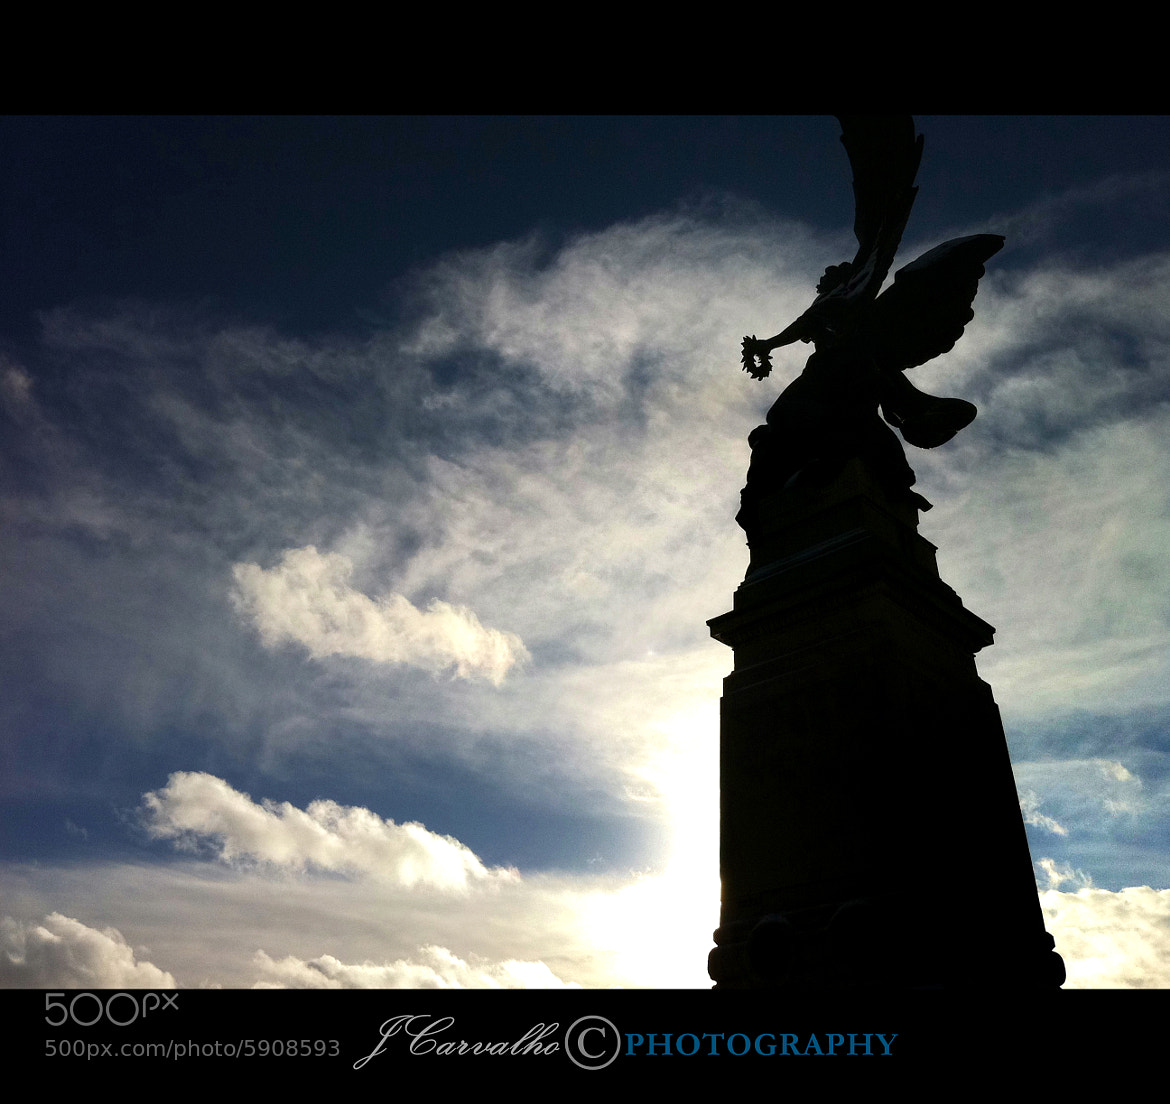 Photograph The statue by Joel Carvalho on 500px